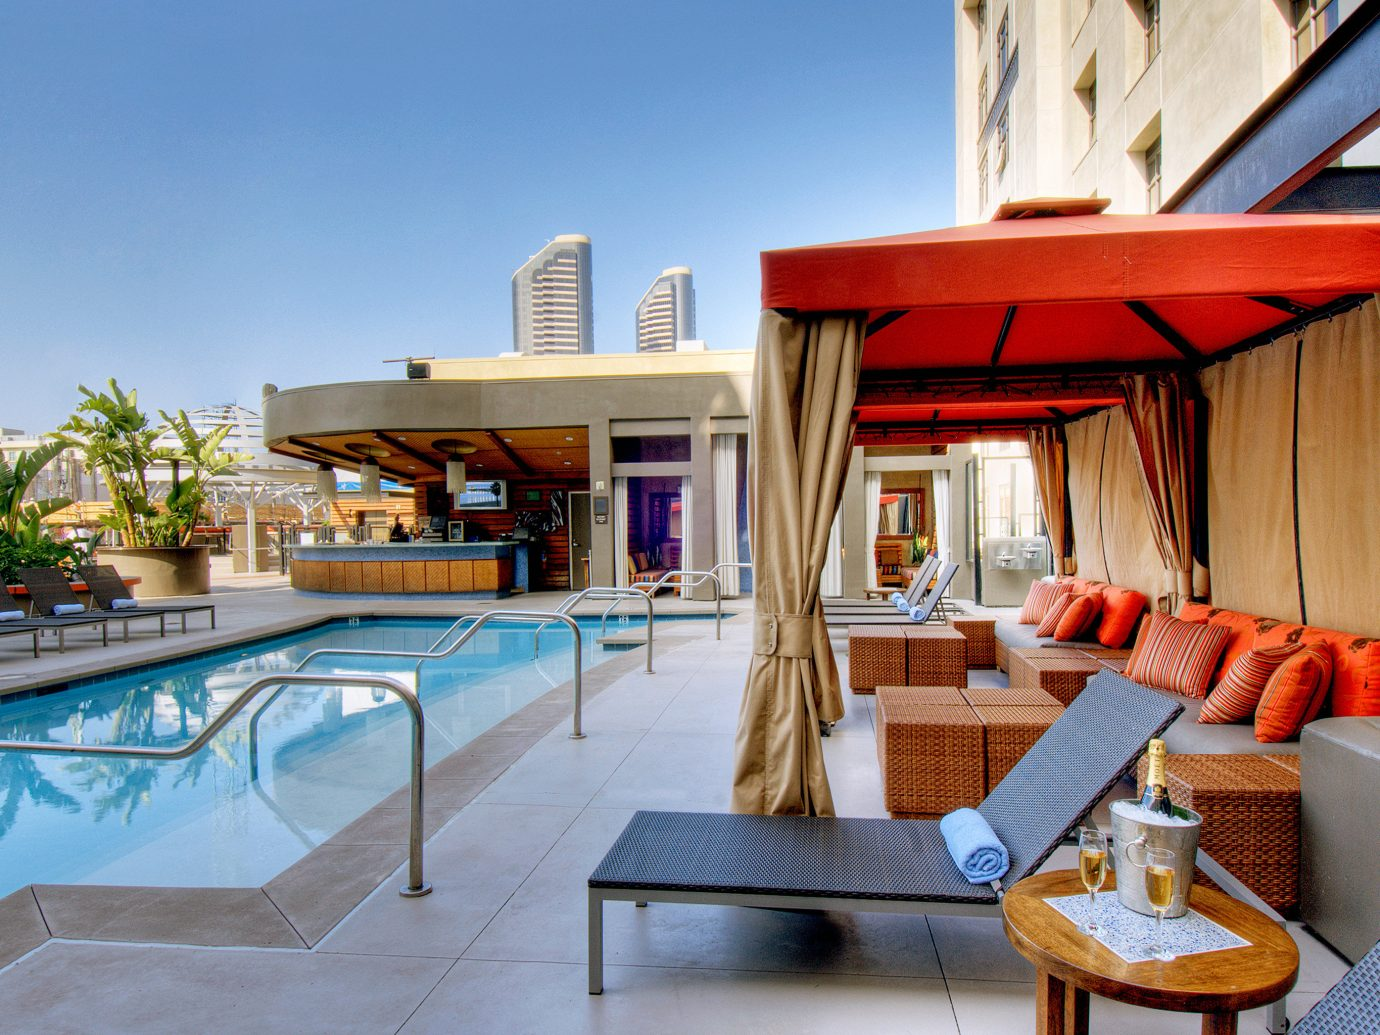 Outdoor Pool At Kimpton Solamar Hotel In Gaslamp District - San Diego